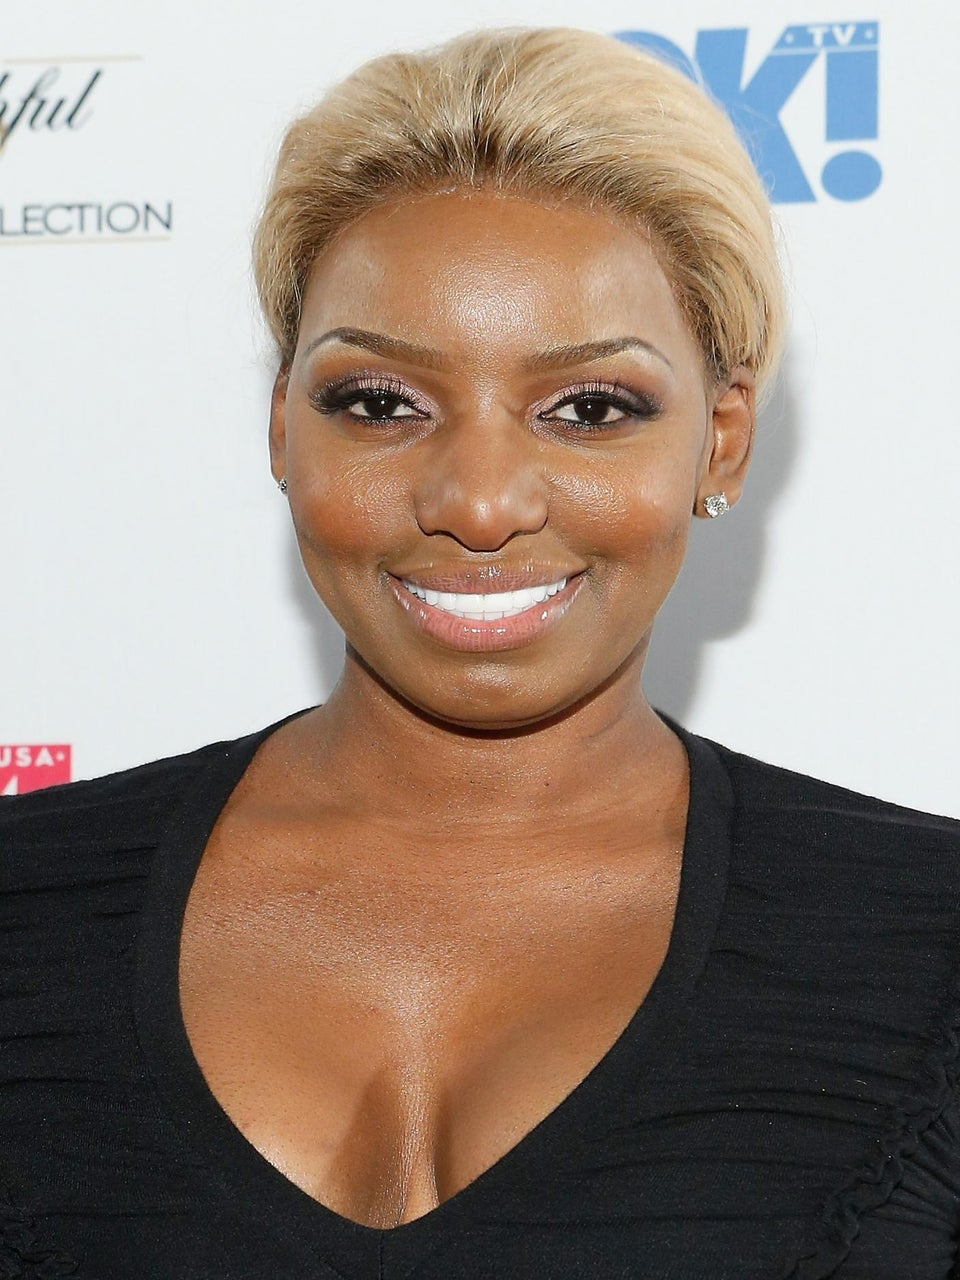 EXCLUSIVE: NeNe Leakes Sets the Record Straight on 'Real Housewives' Drama